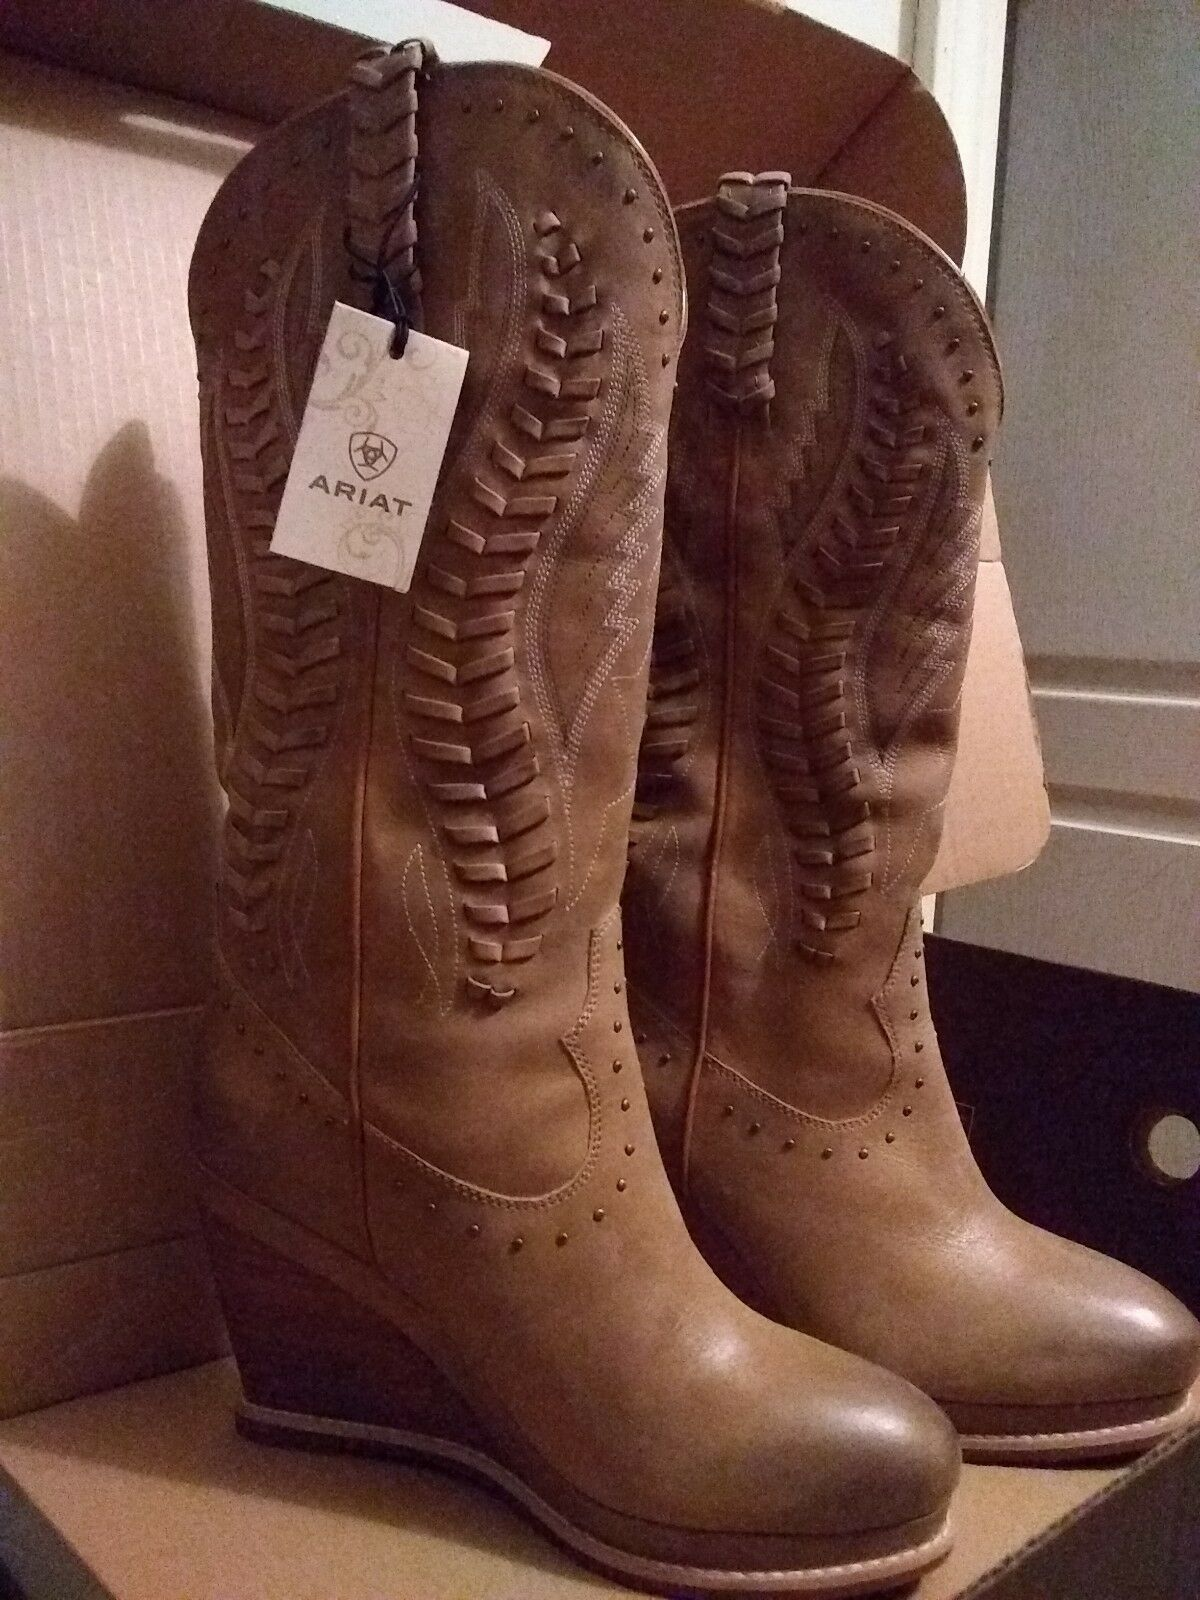 Ariat boots wedged heel , new